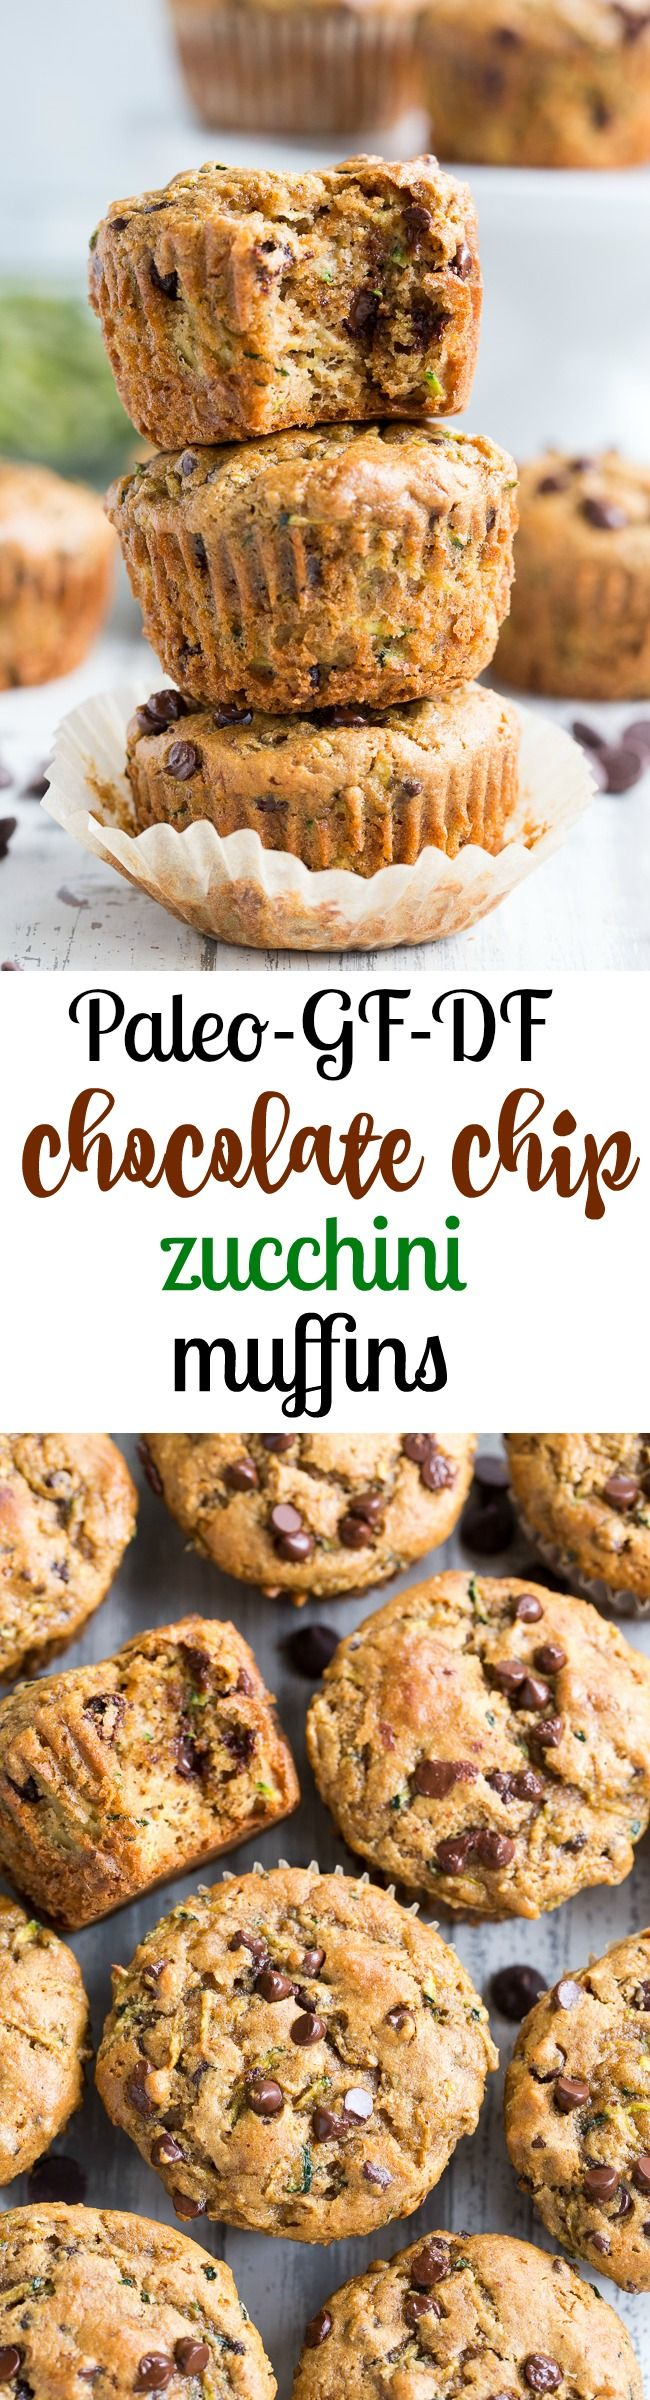 These chocolate chip zucchini muffins are seriously tasty with a soft, moist texture and the perfect amount of sweetness. They're loaded with chocolate chips and, of course zucchini - though you can't taste the veggies at all! Kid approved, easy to make, paleo, gluten-free, dairy-free.